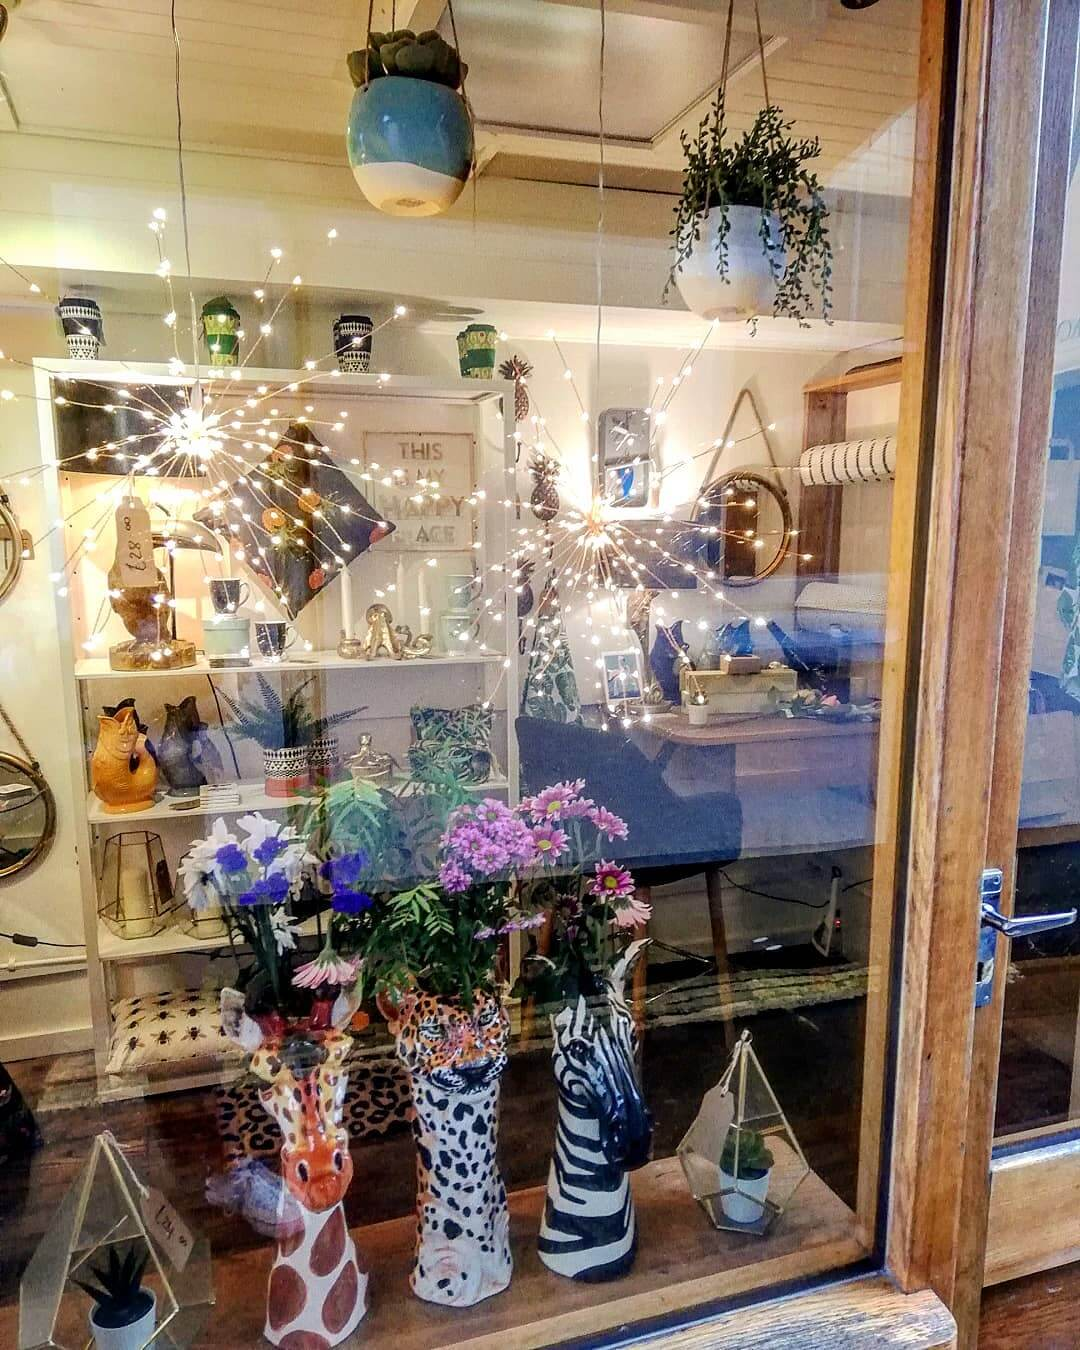 Open until 3pm today! Come and brighten up this dreary day with a lovely gift for yourself